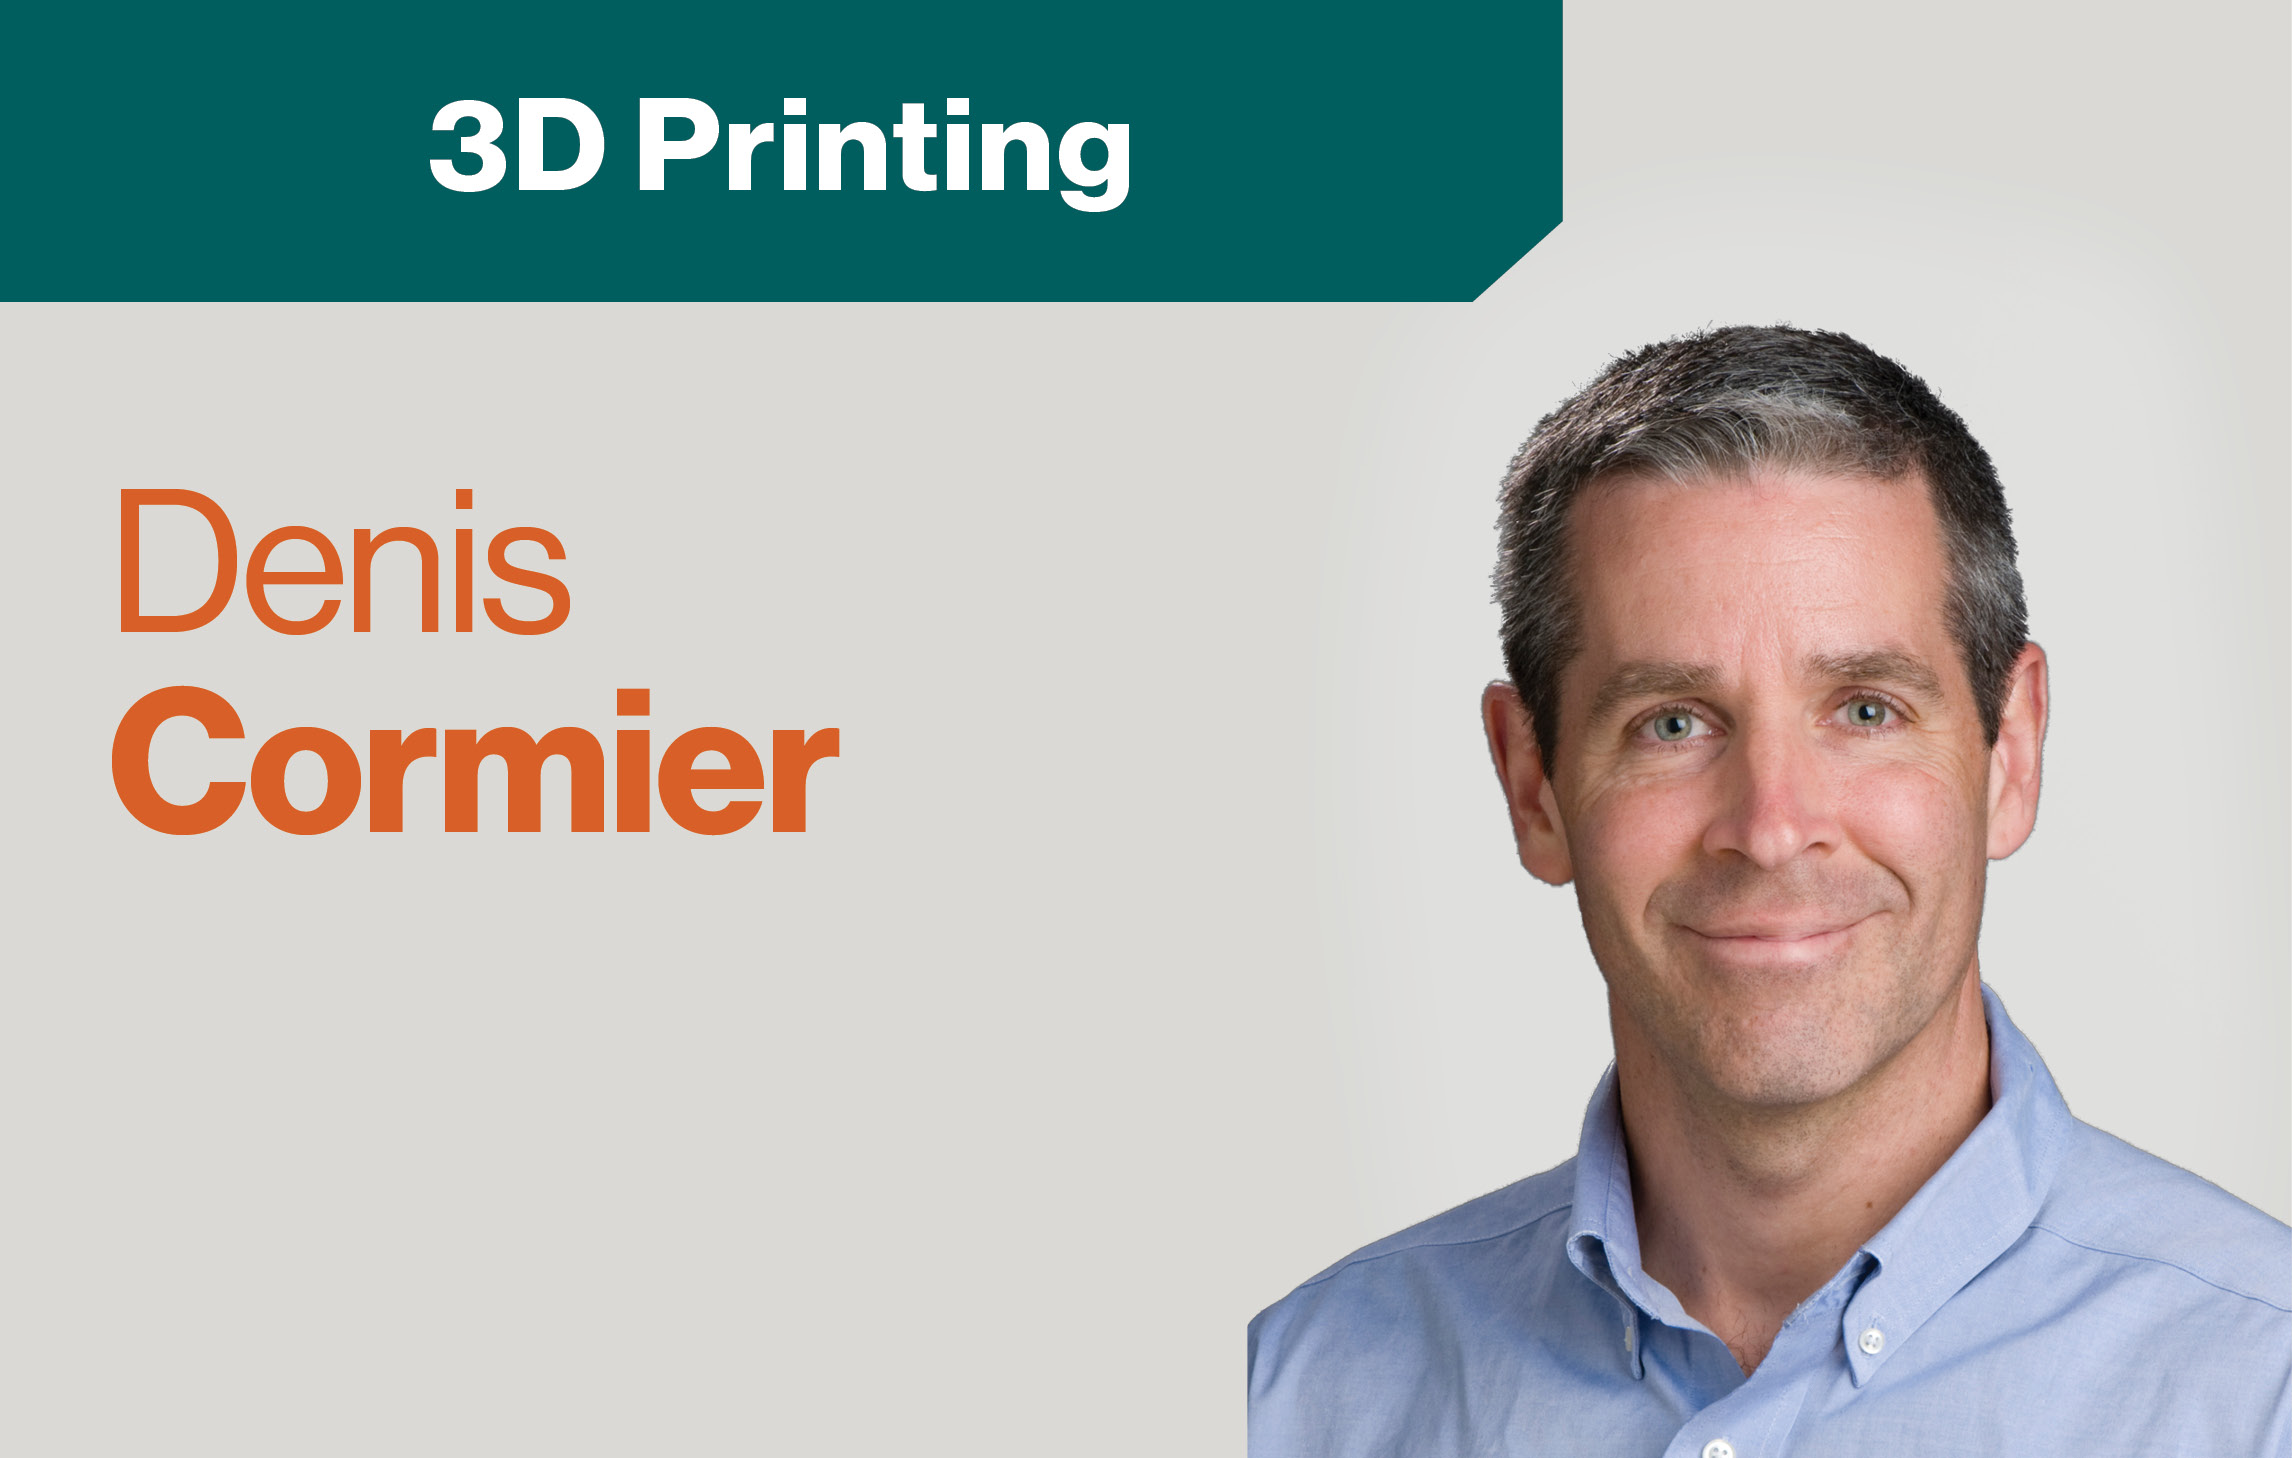 img: Denis Cormier   Text: 3D Printing Denis Cormier